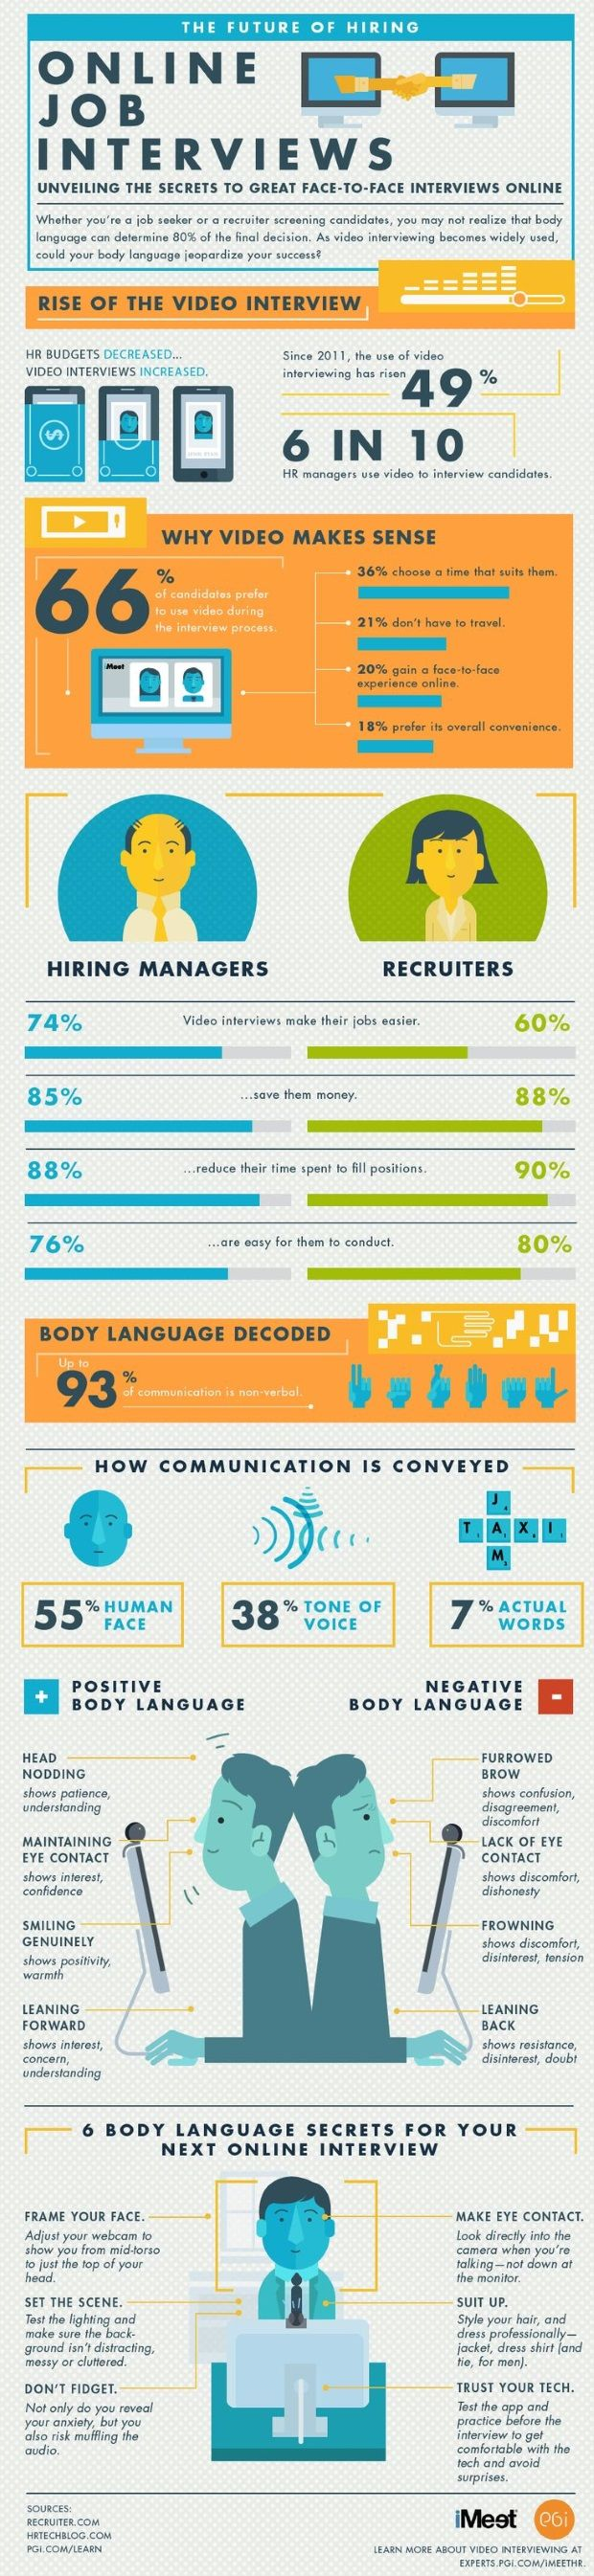 The One Secret to Nailing a Video Job Interview #Infographic